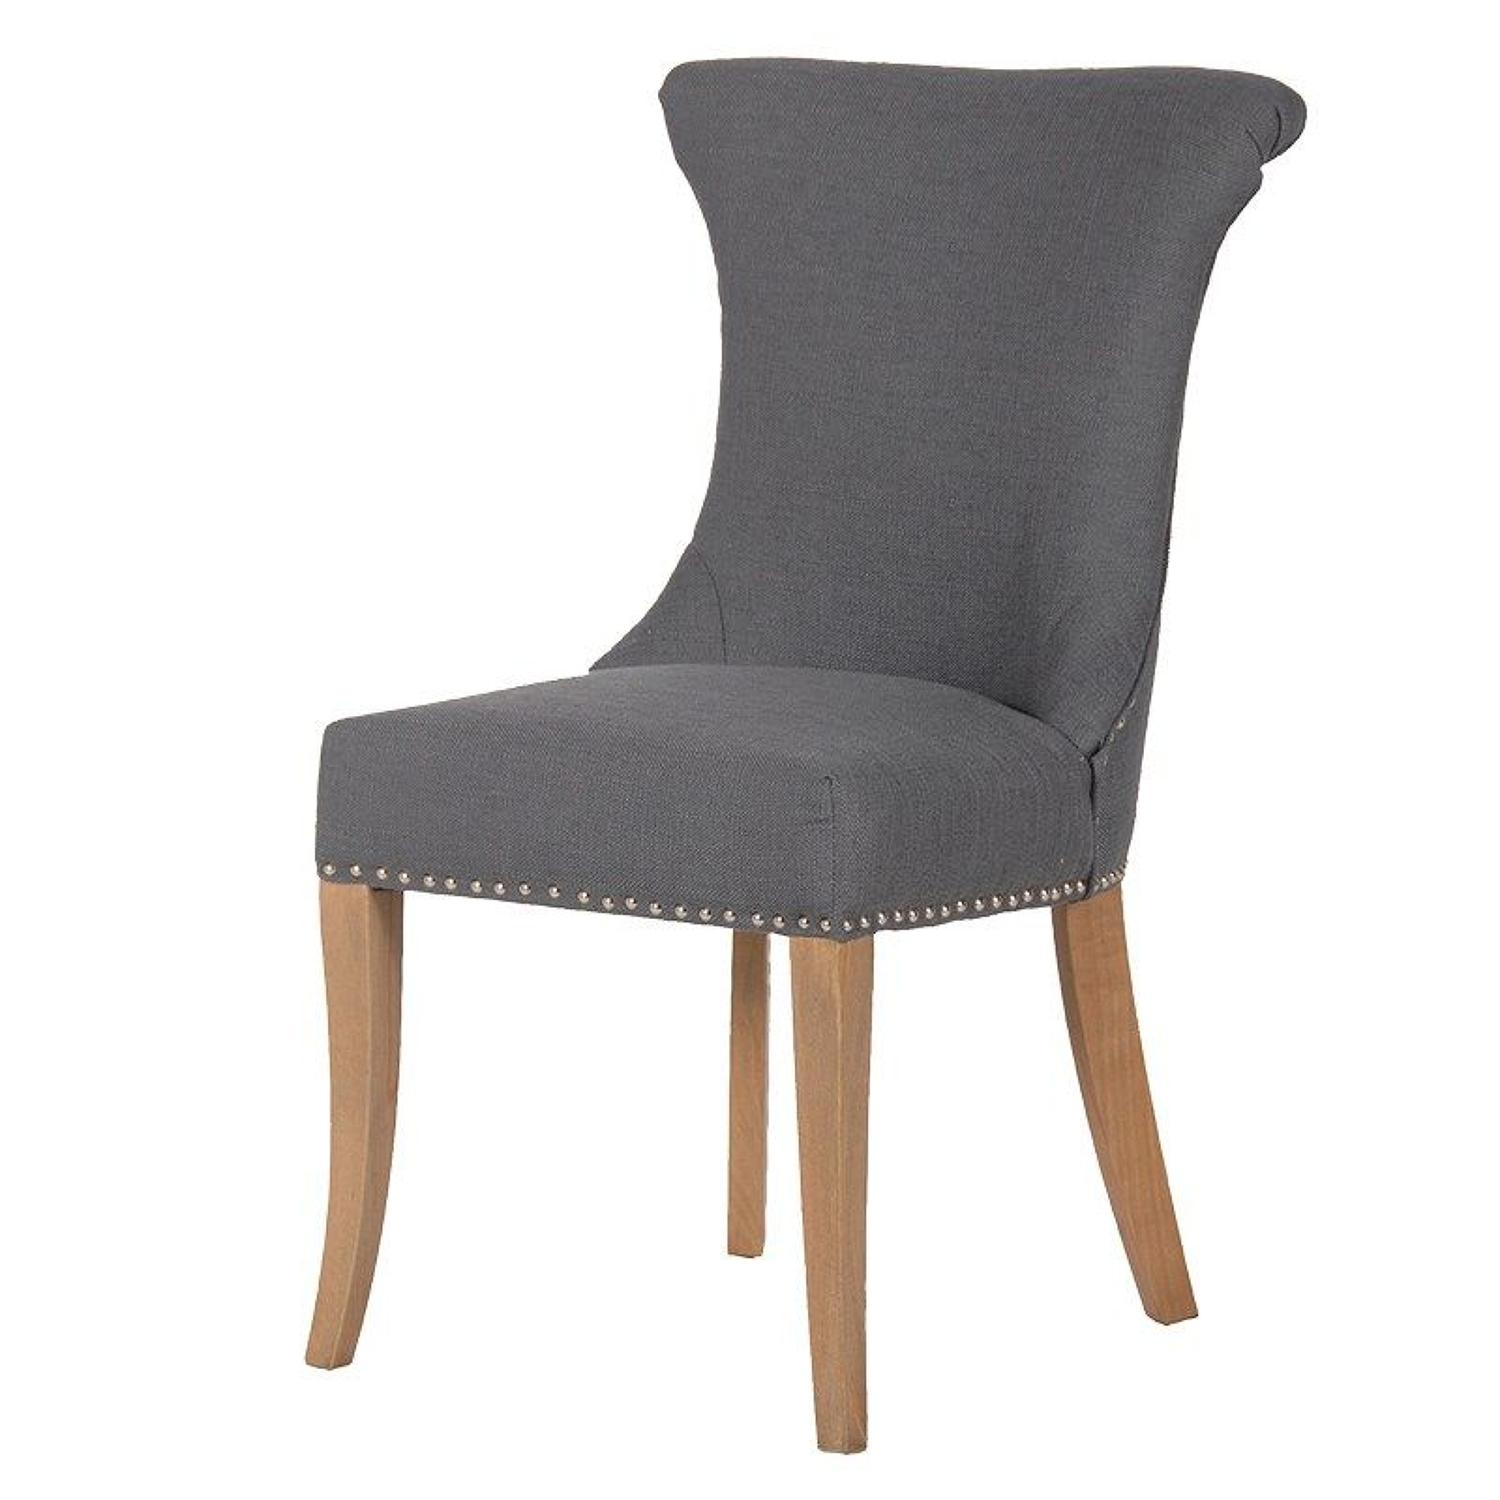 Grey studded dining chair with ring back.